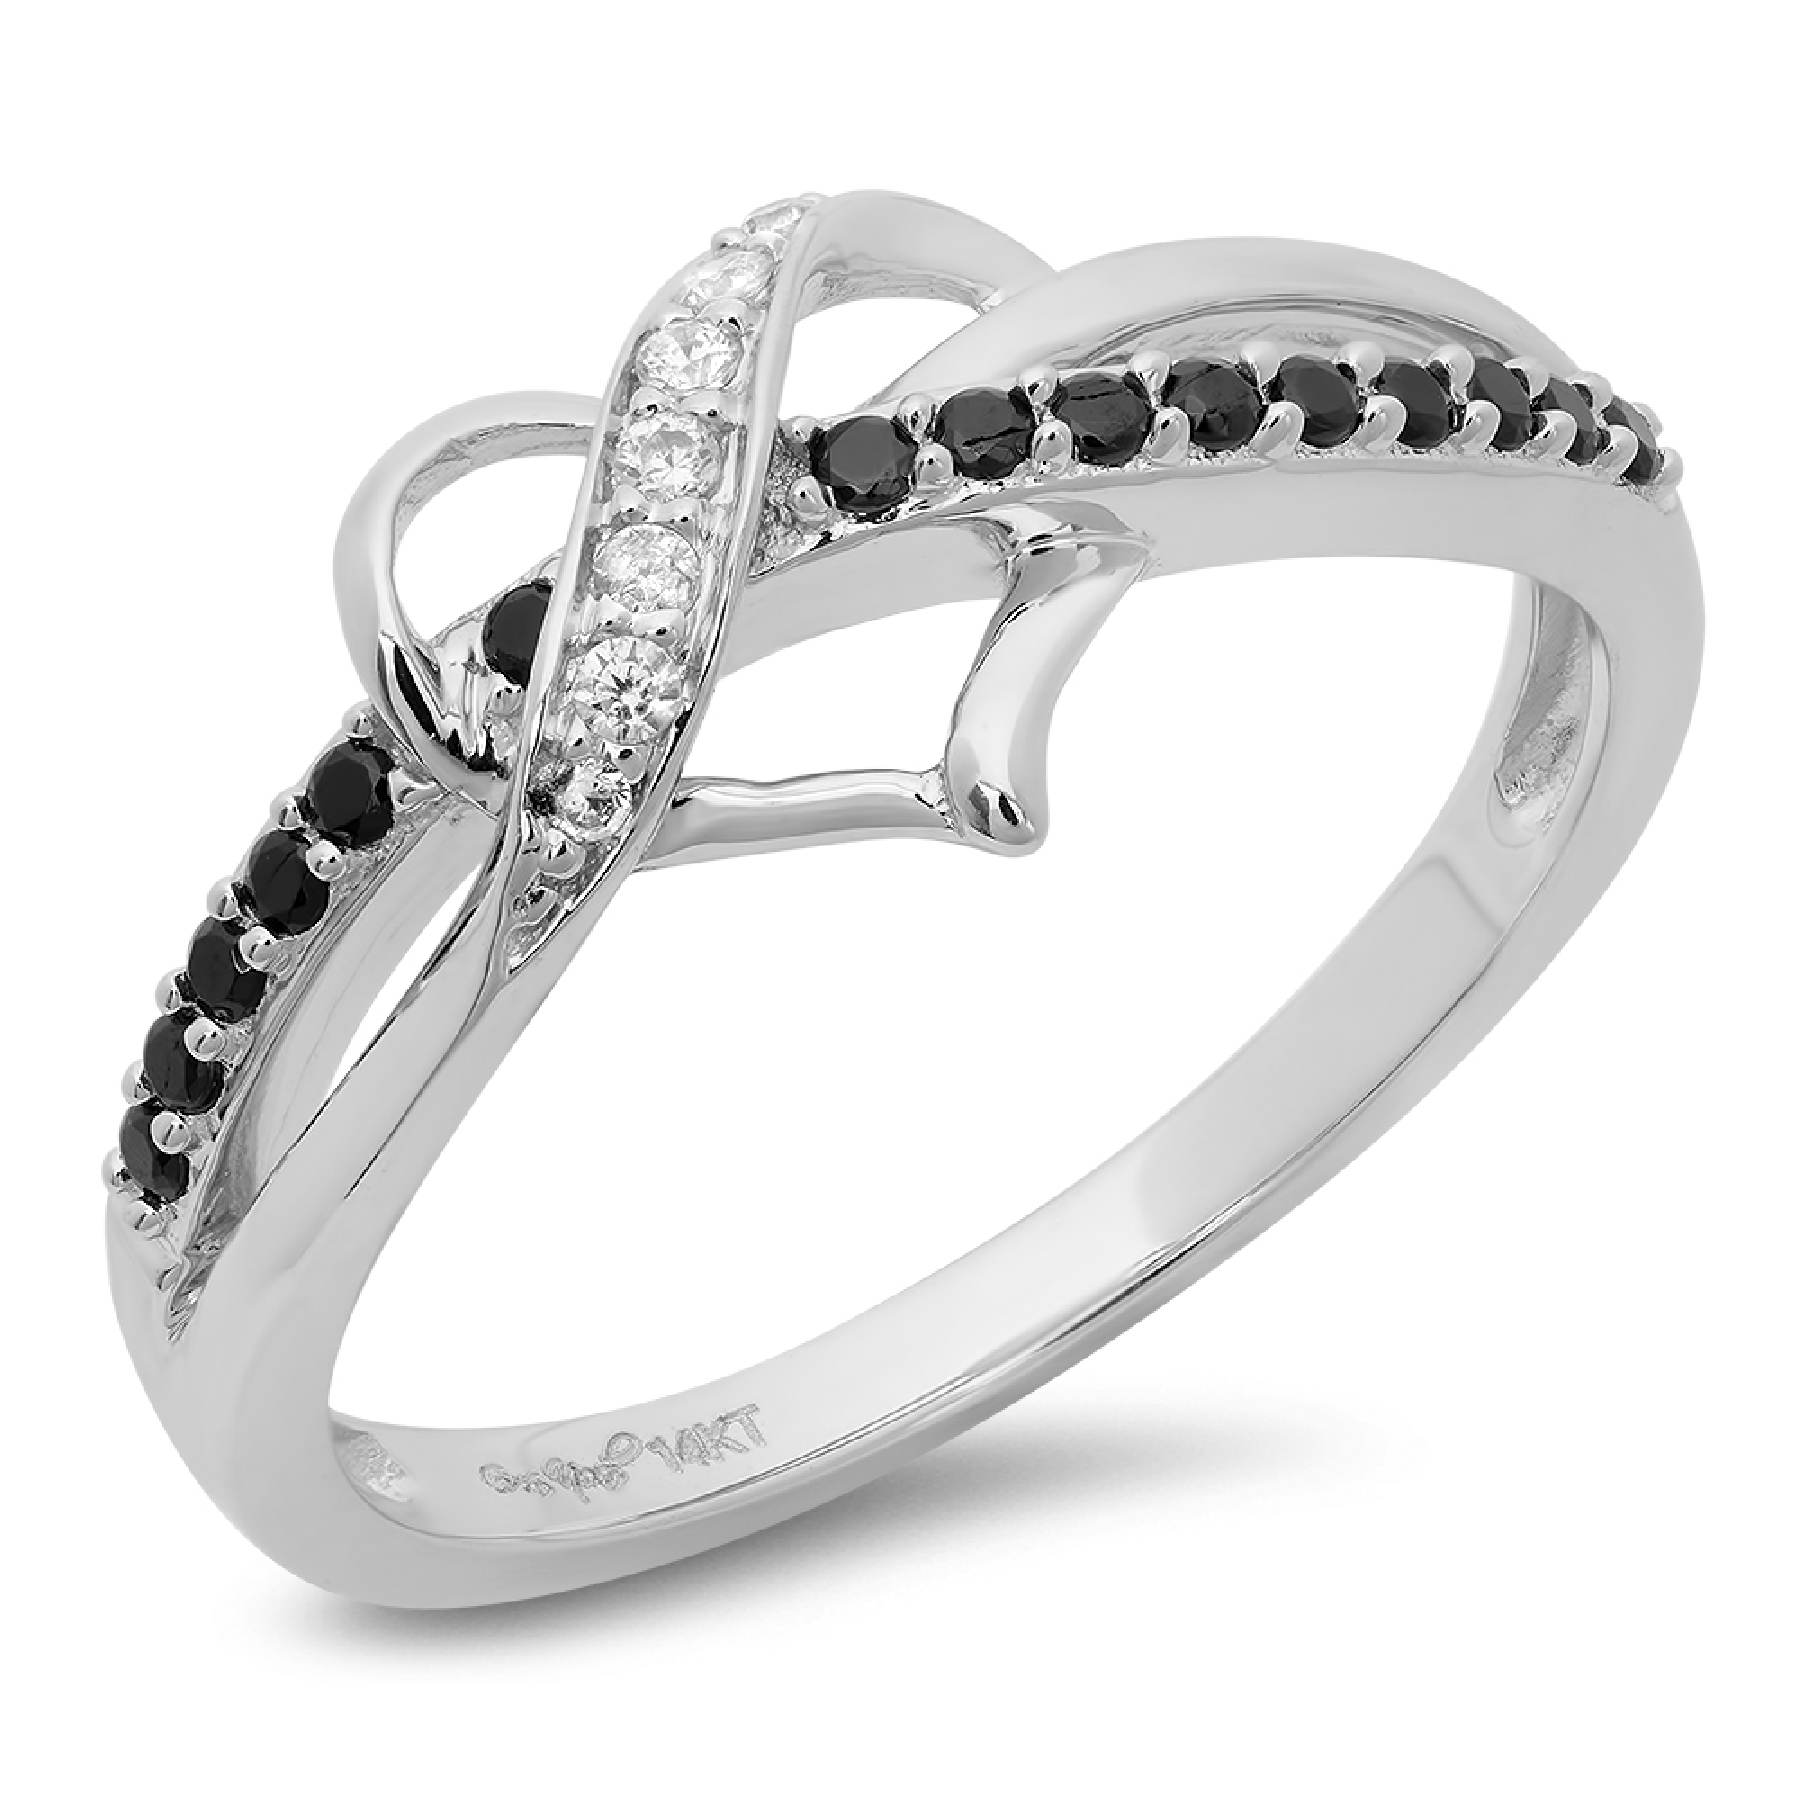 .2 Round Heart Solitaire Promise Wedding Engagement Wedding Ring 14k White gold